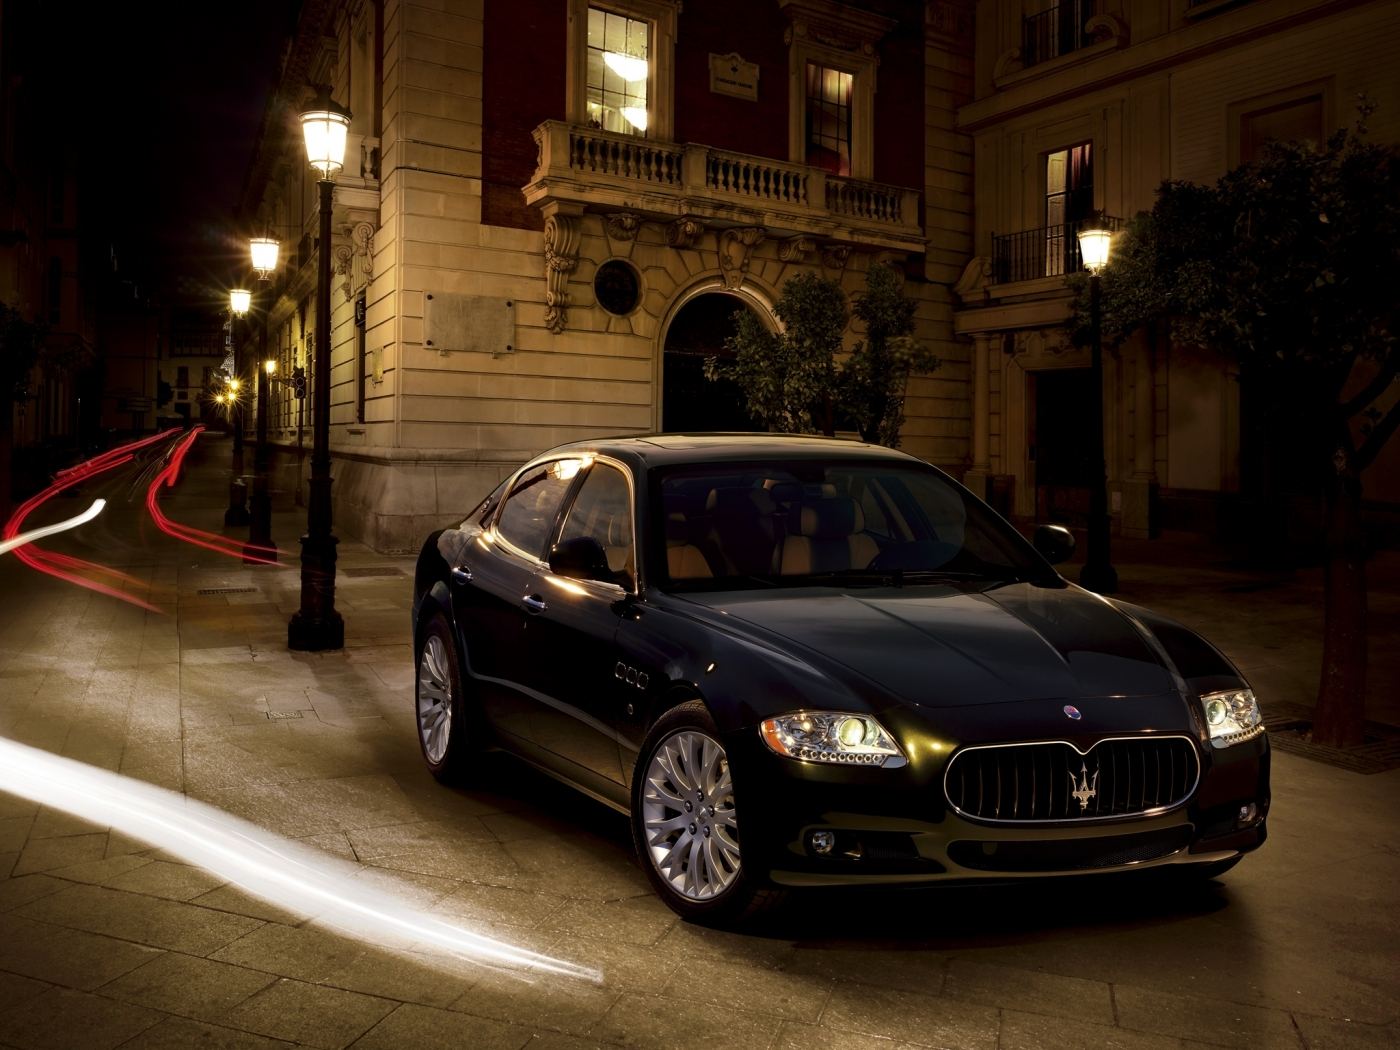 40117 download wallpaper Transport, Auto, Maserati screensavers and pictures for free